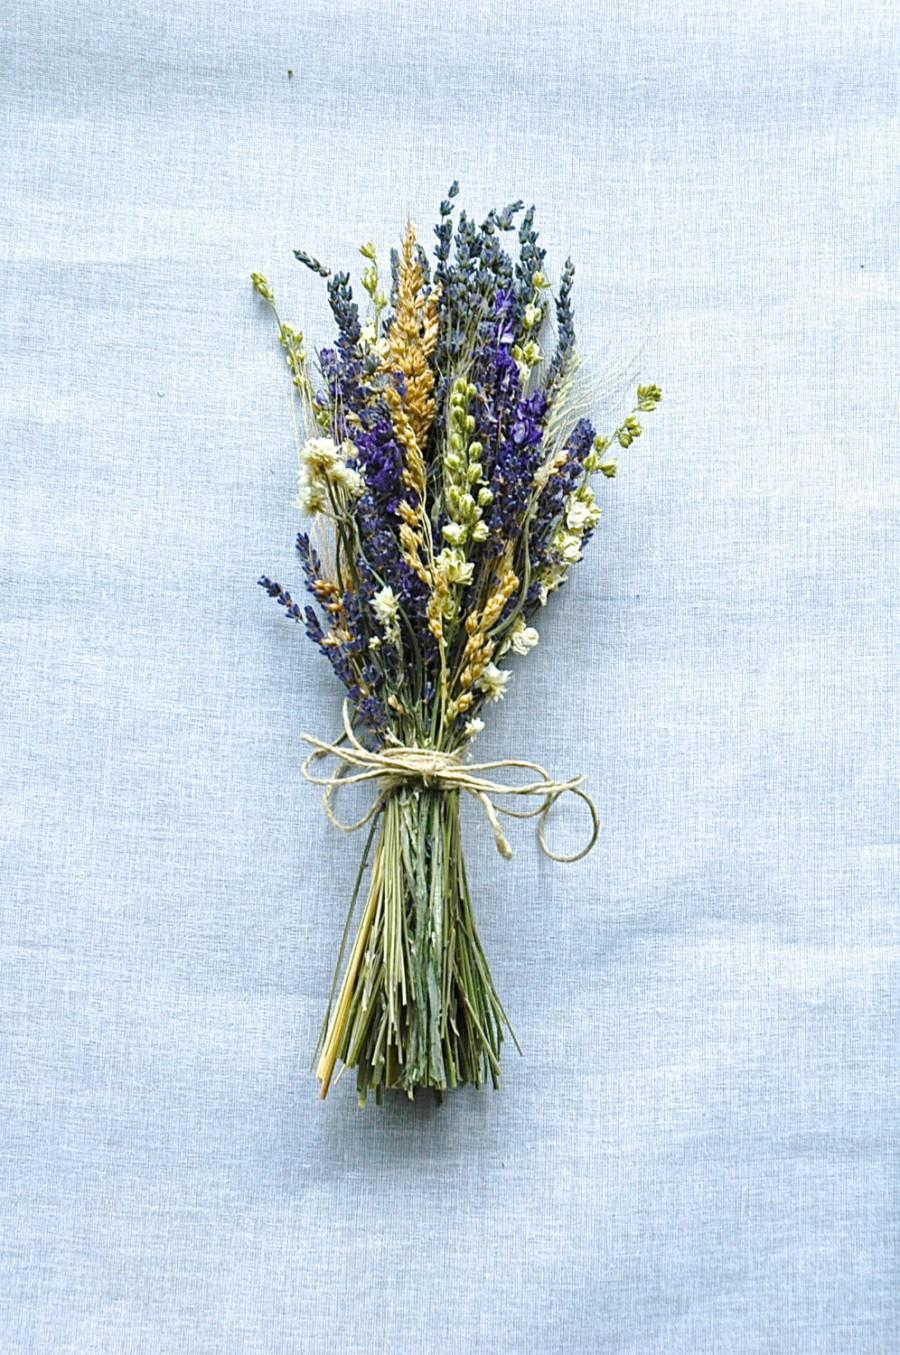 Mariage - 2  Summer Wedding Bridesmaid Bouquets of Montana Lavender  Larkspur and Wheat